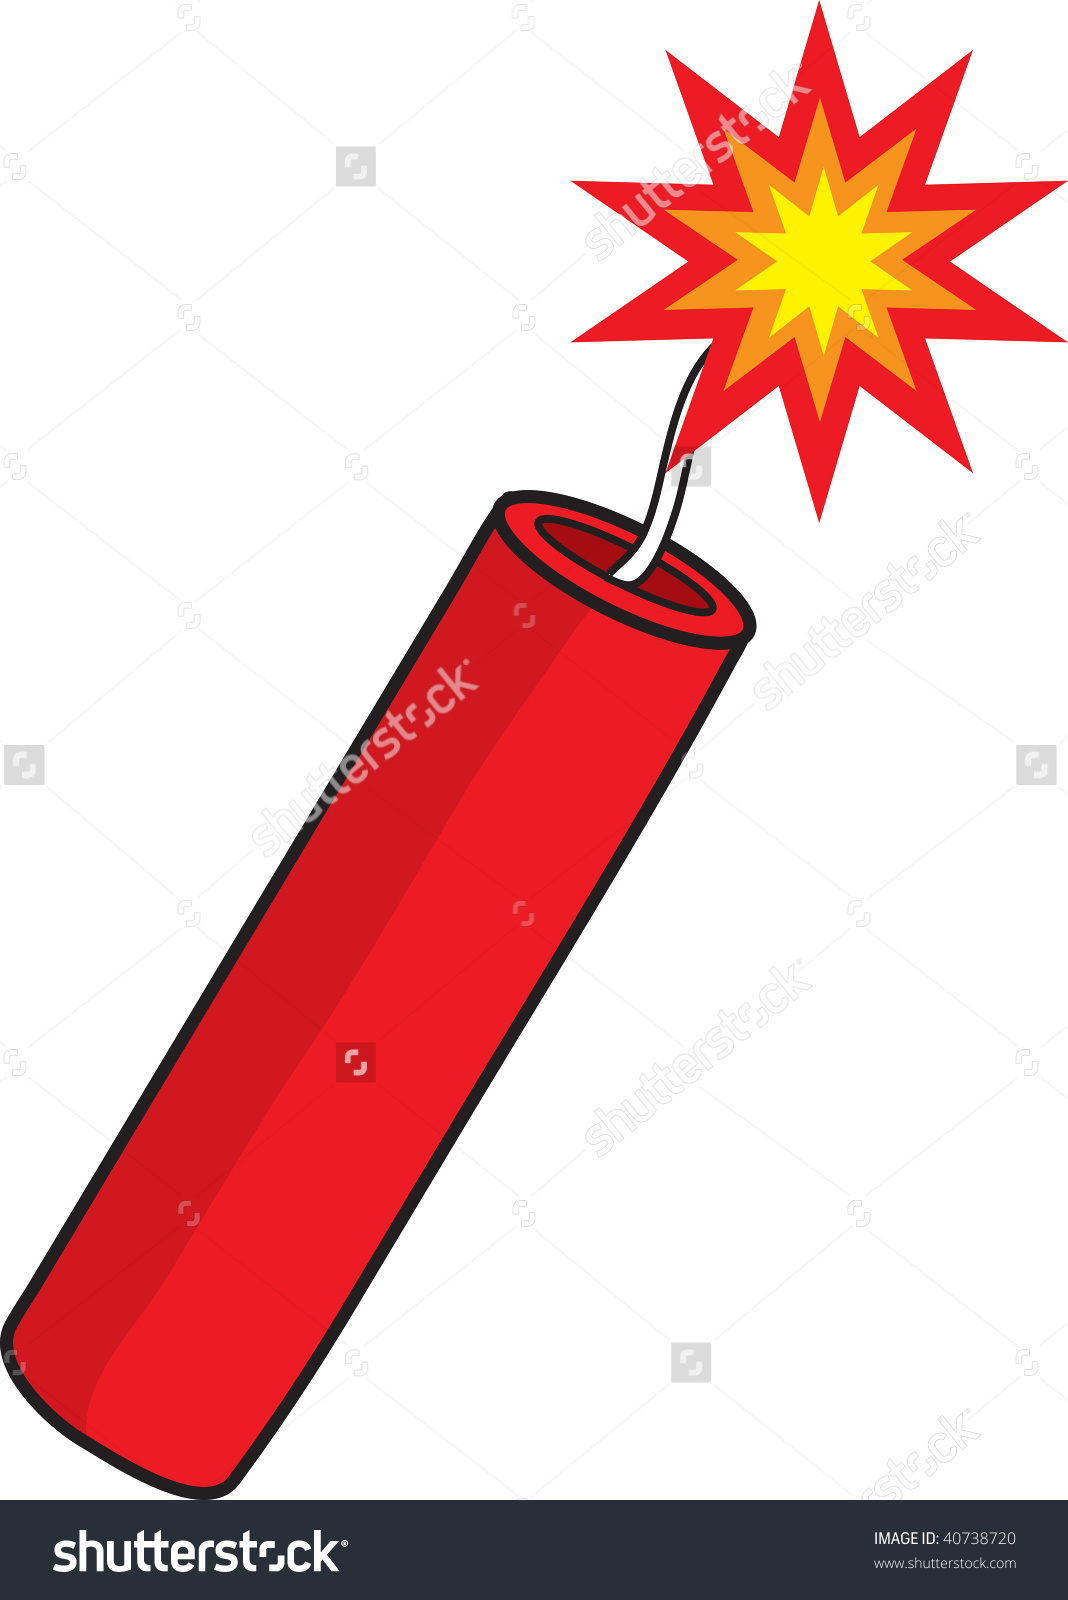 Bomb clipart dynamite. Free images at clker